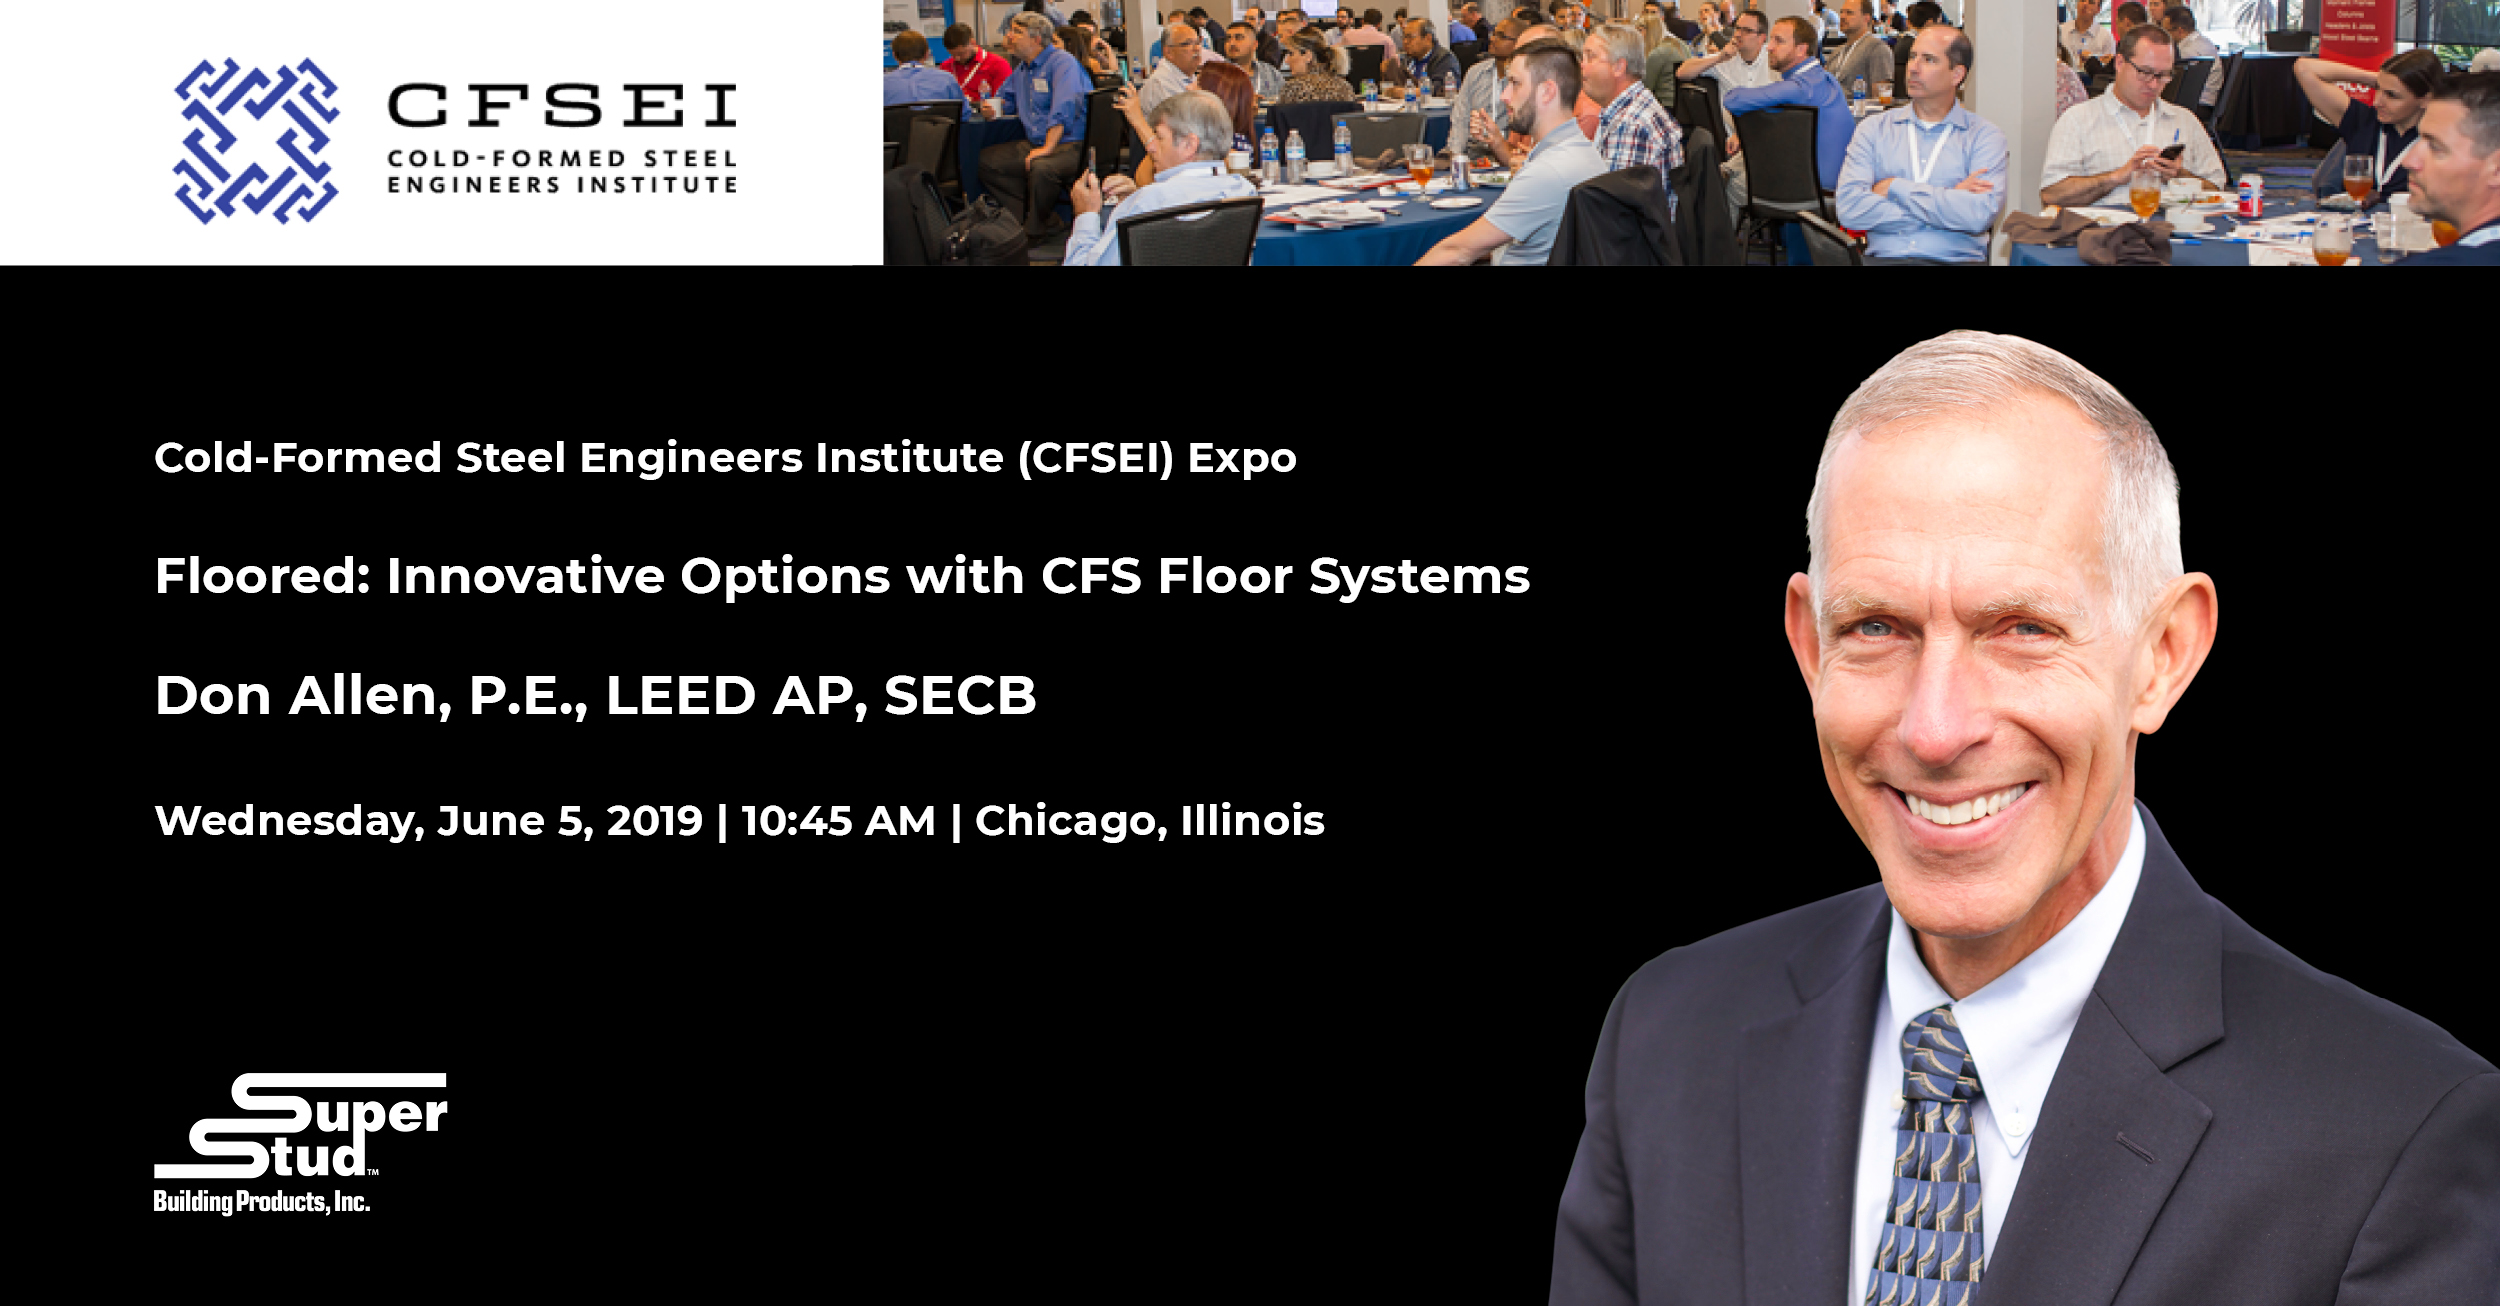 Don Allen to Present at CFSEI